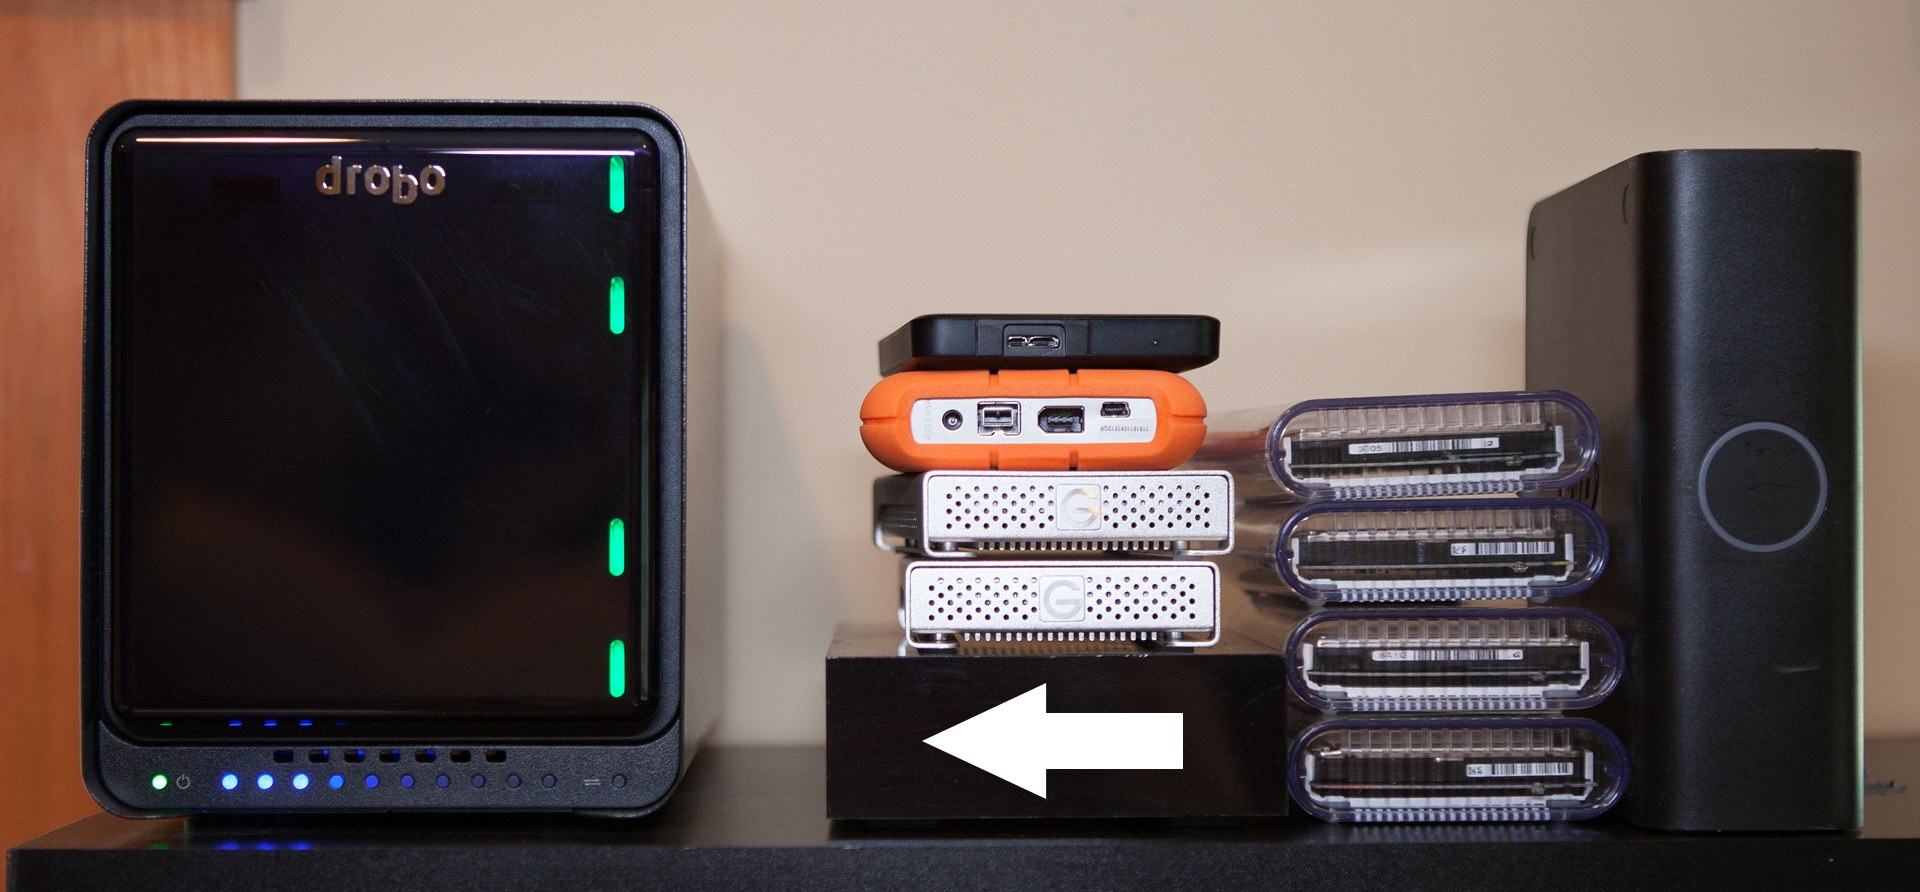 Consolidating and Organizing with the Drobo 5D | Photofocus